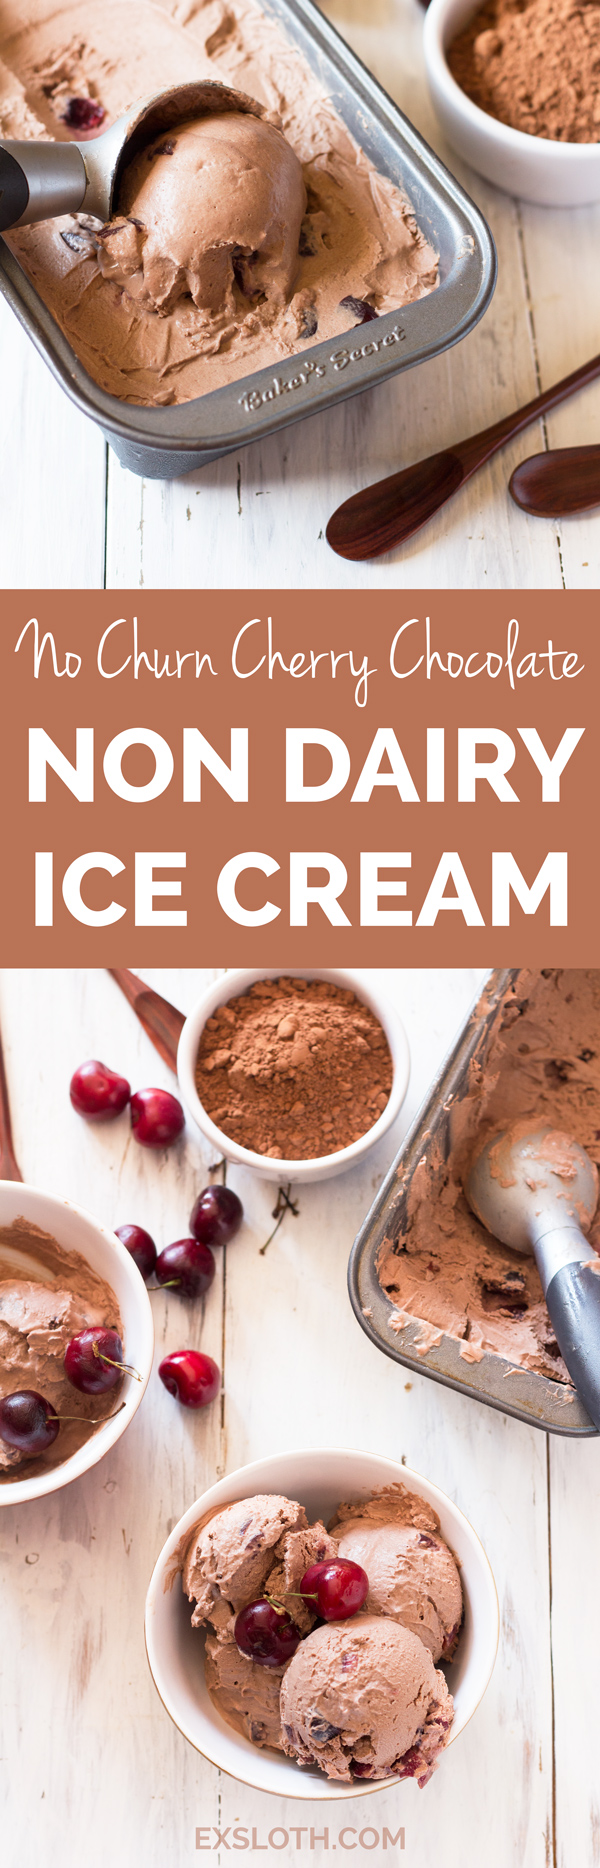 No churn cherry chocolate non dairy ice cream (Vegan, Gluten Free, Paleo) via @ExSloth | ExSloth.com